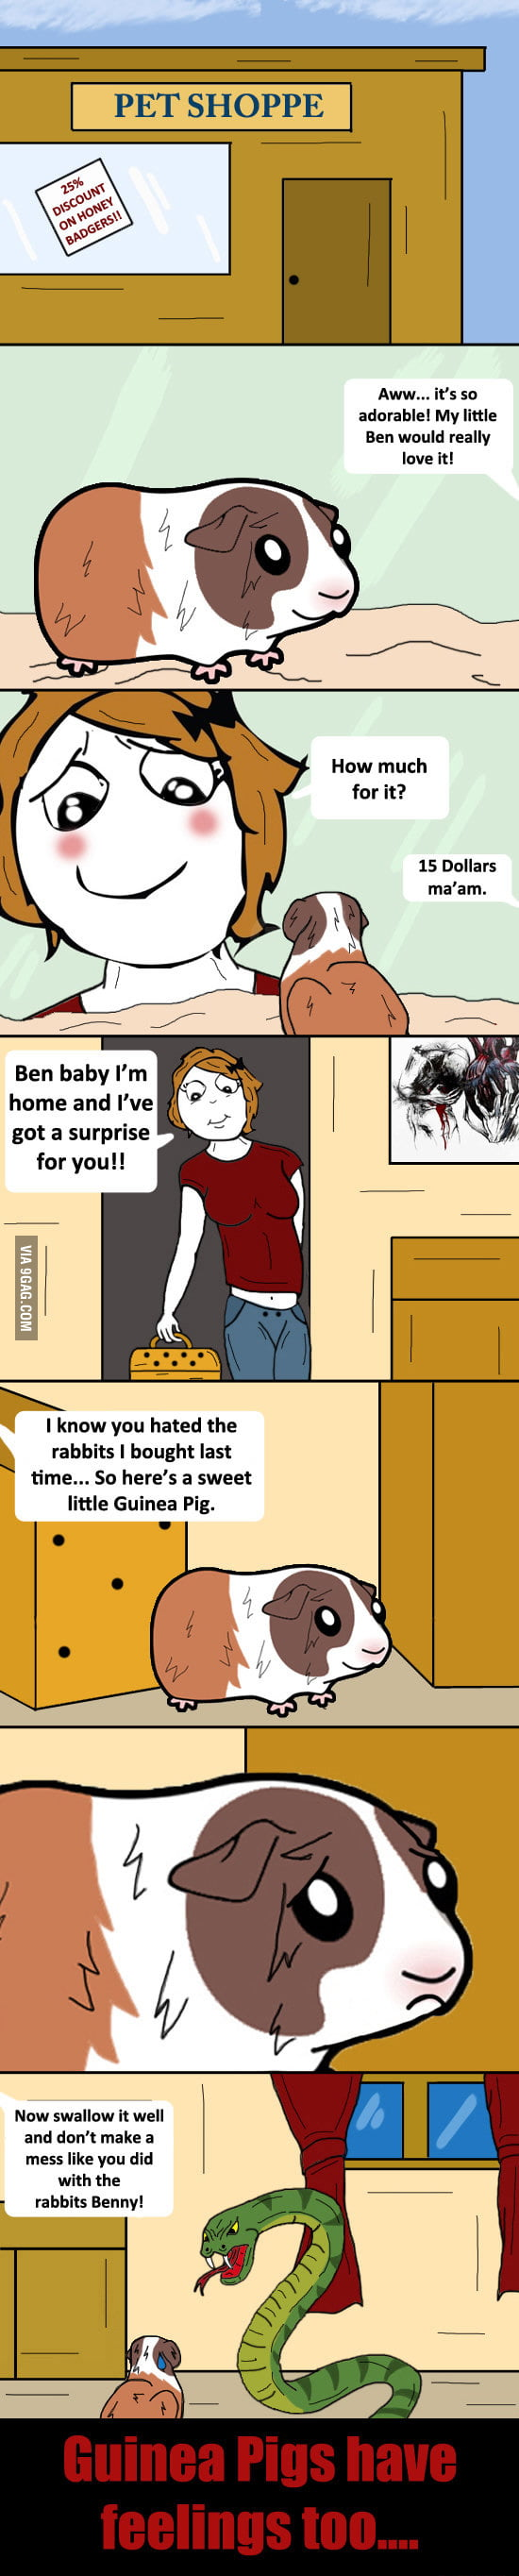 Guinea Pigs have feelings too